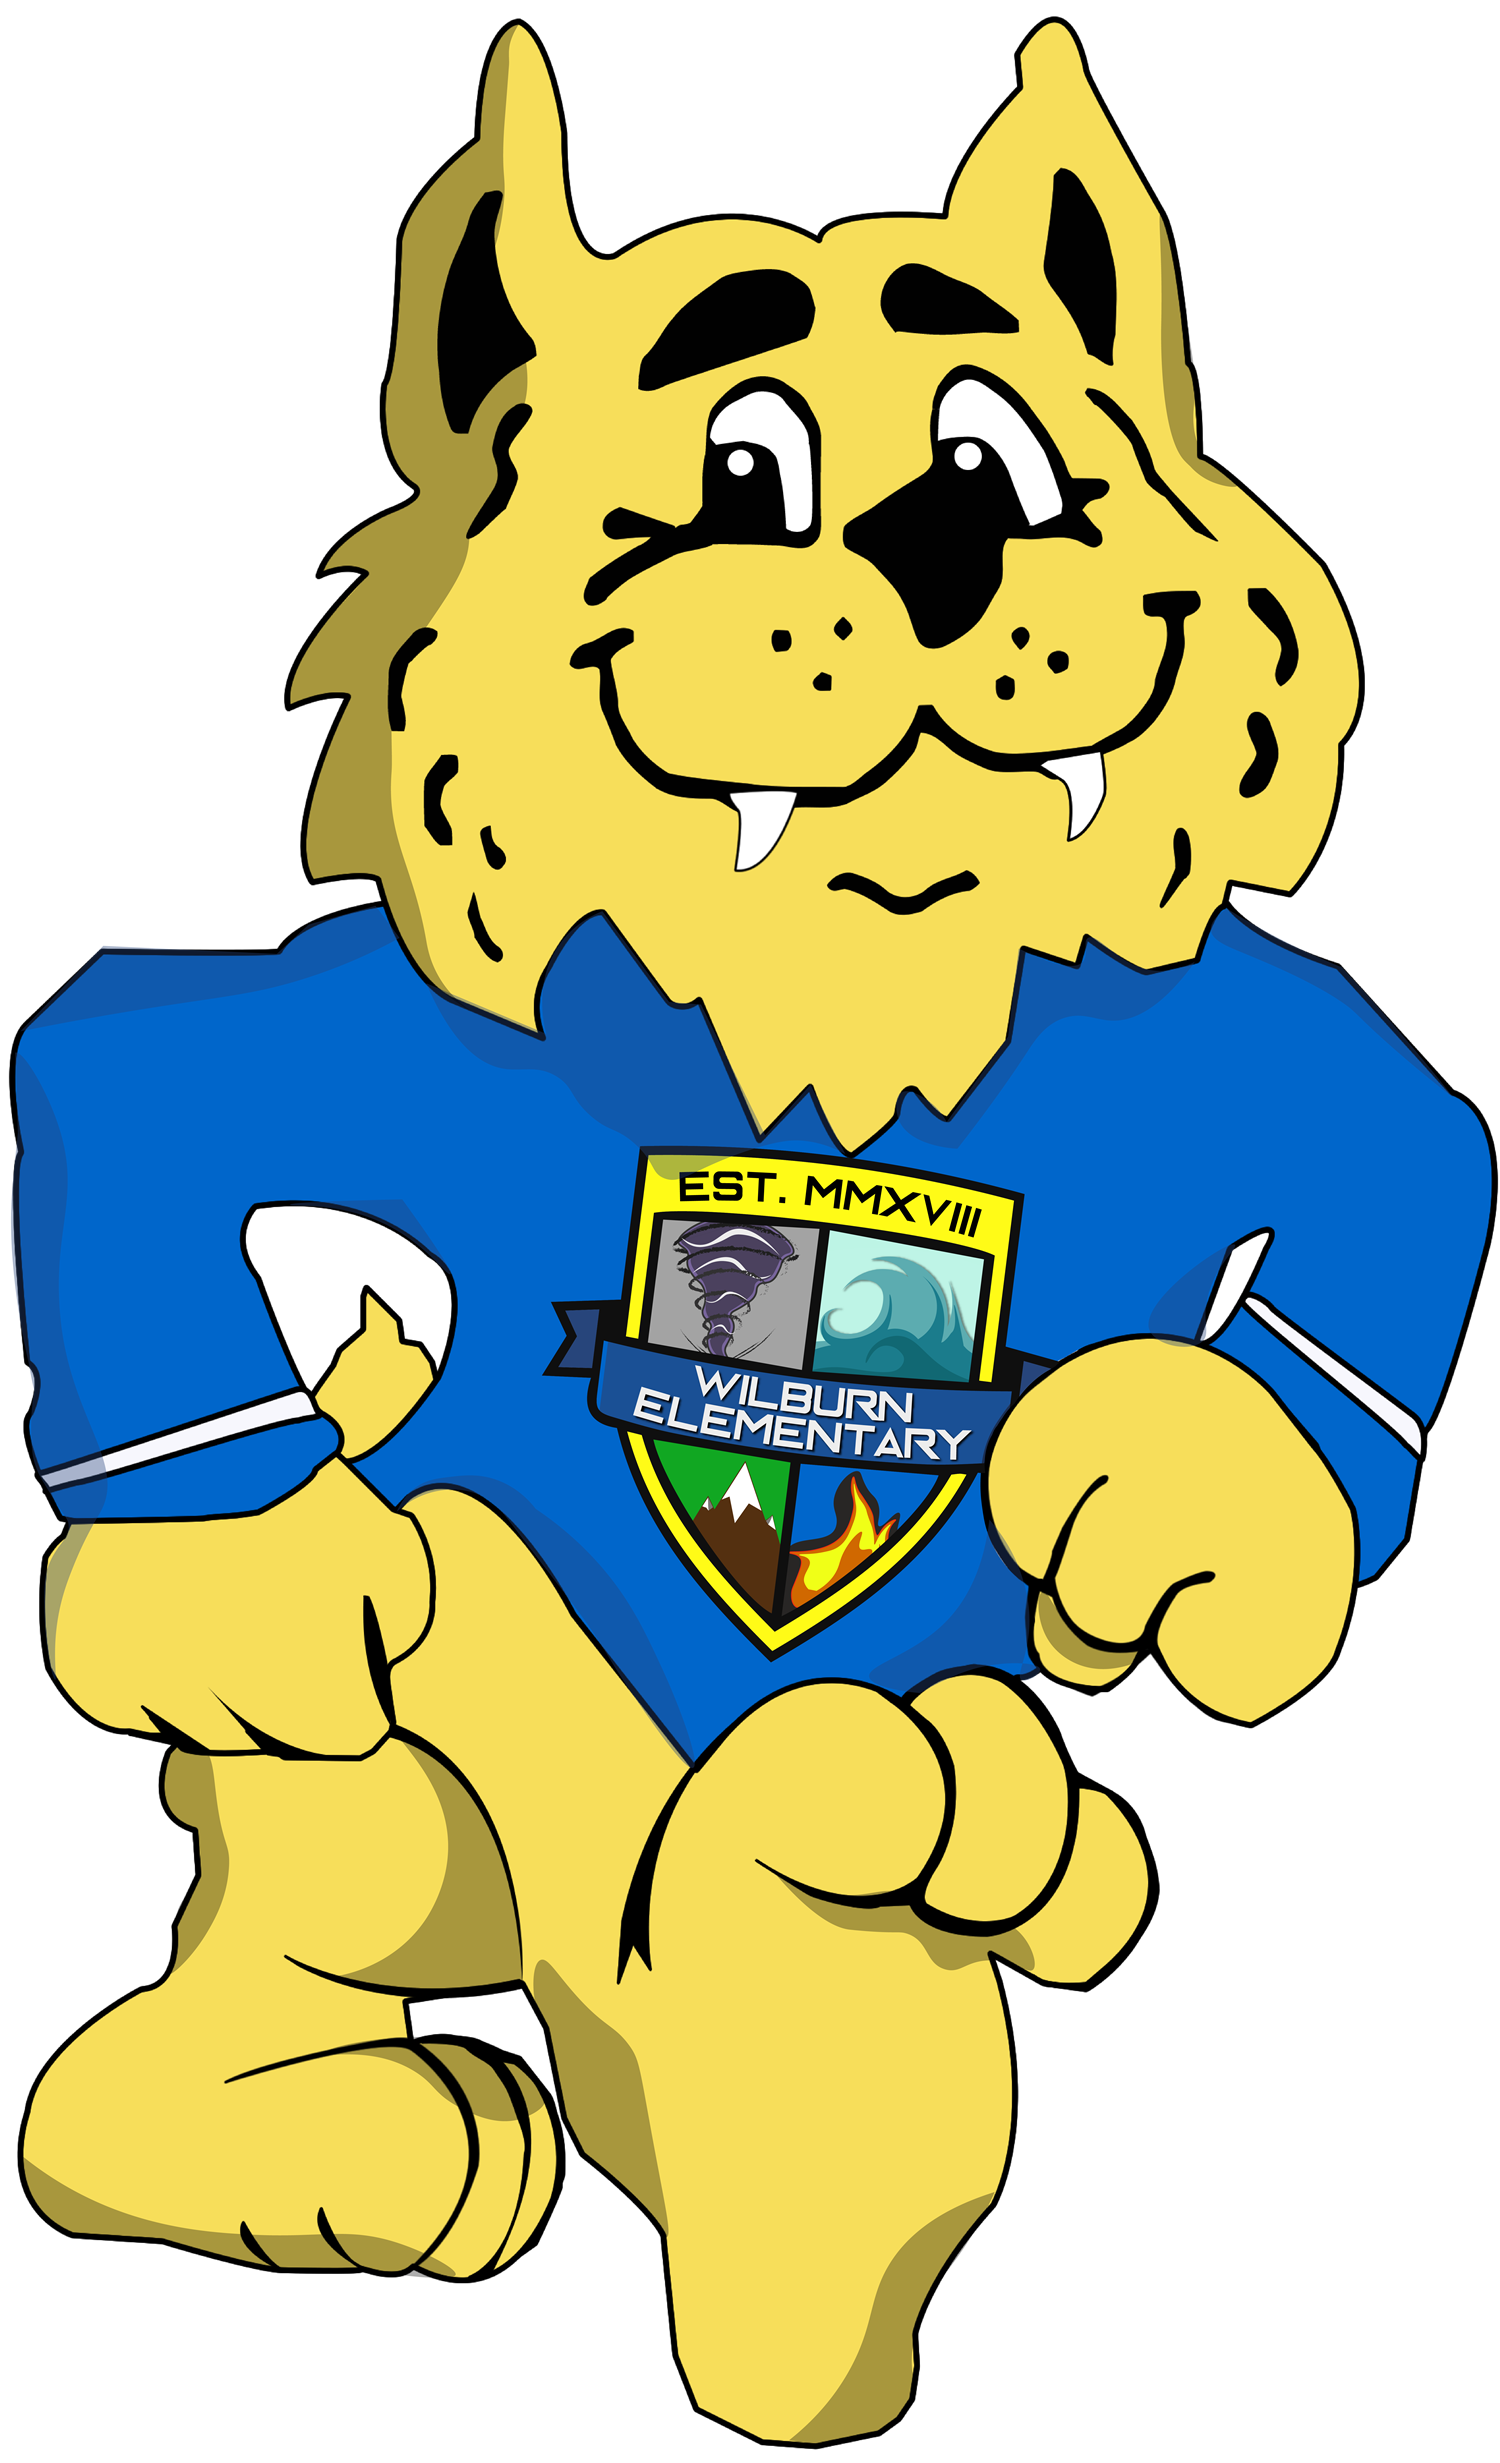 Willie with Crest